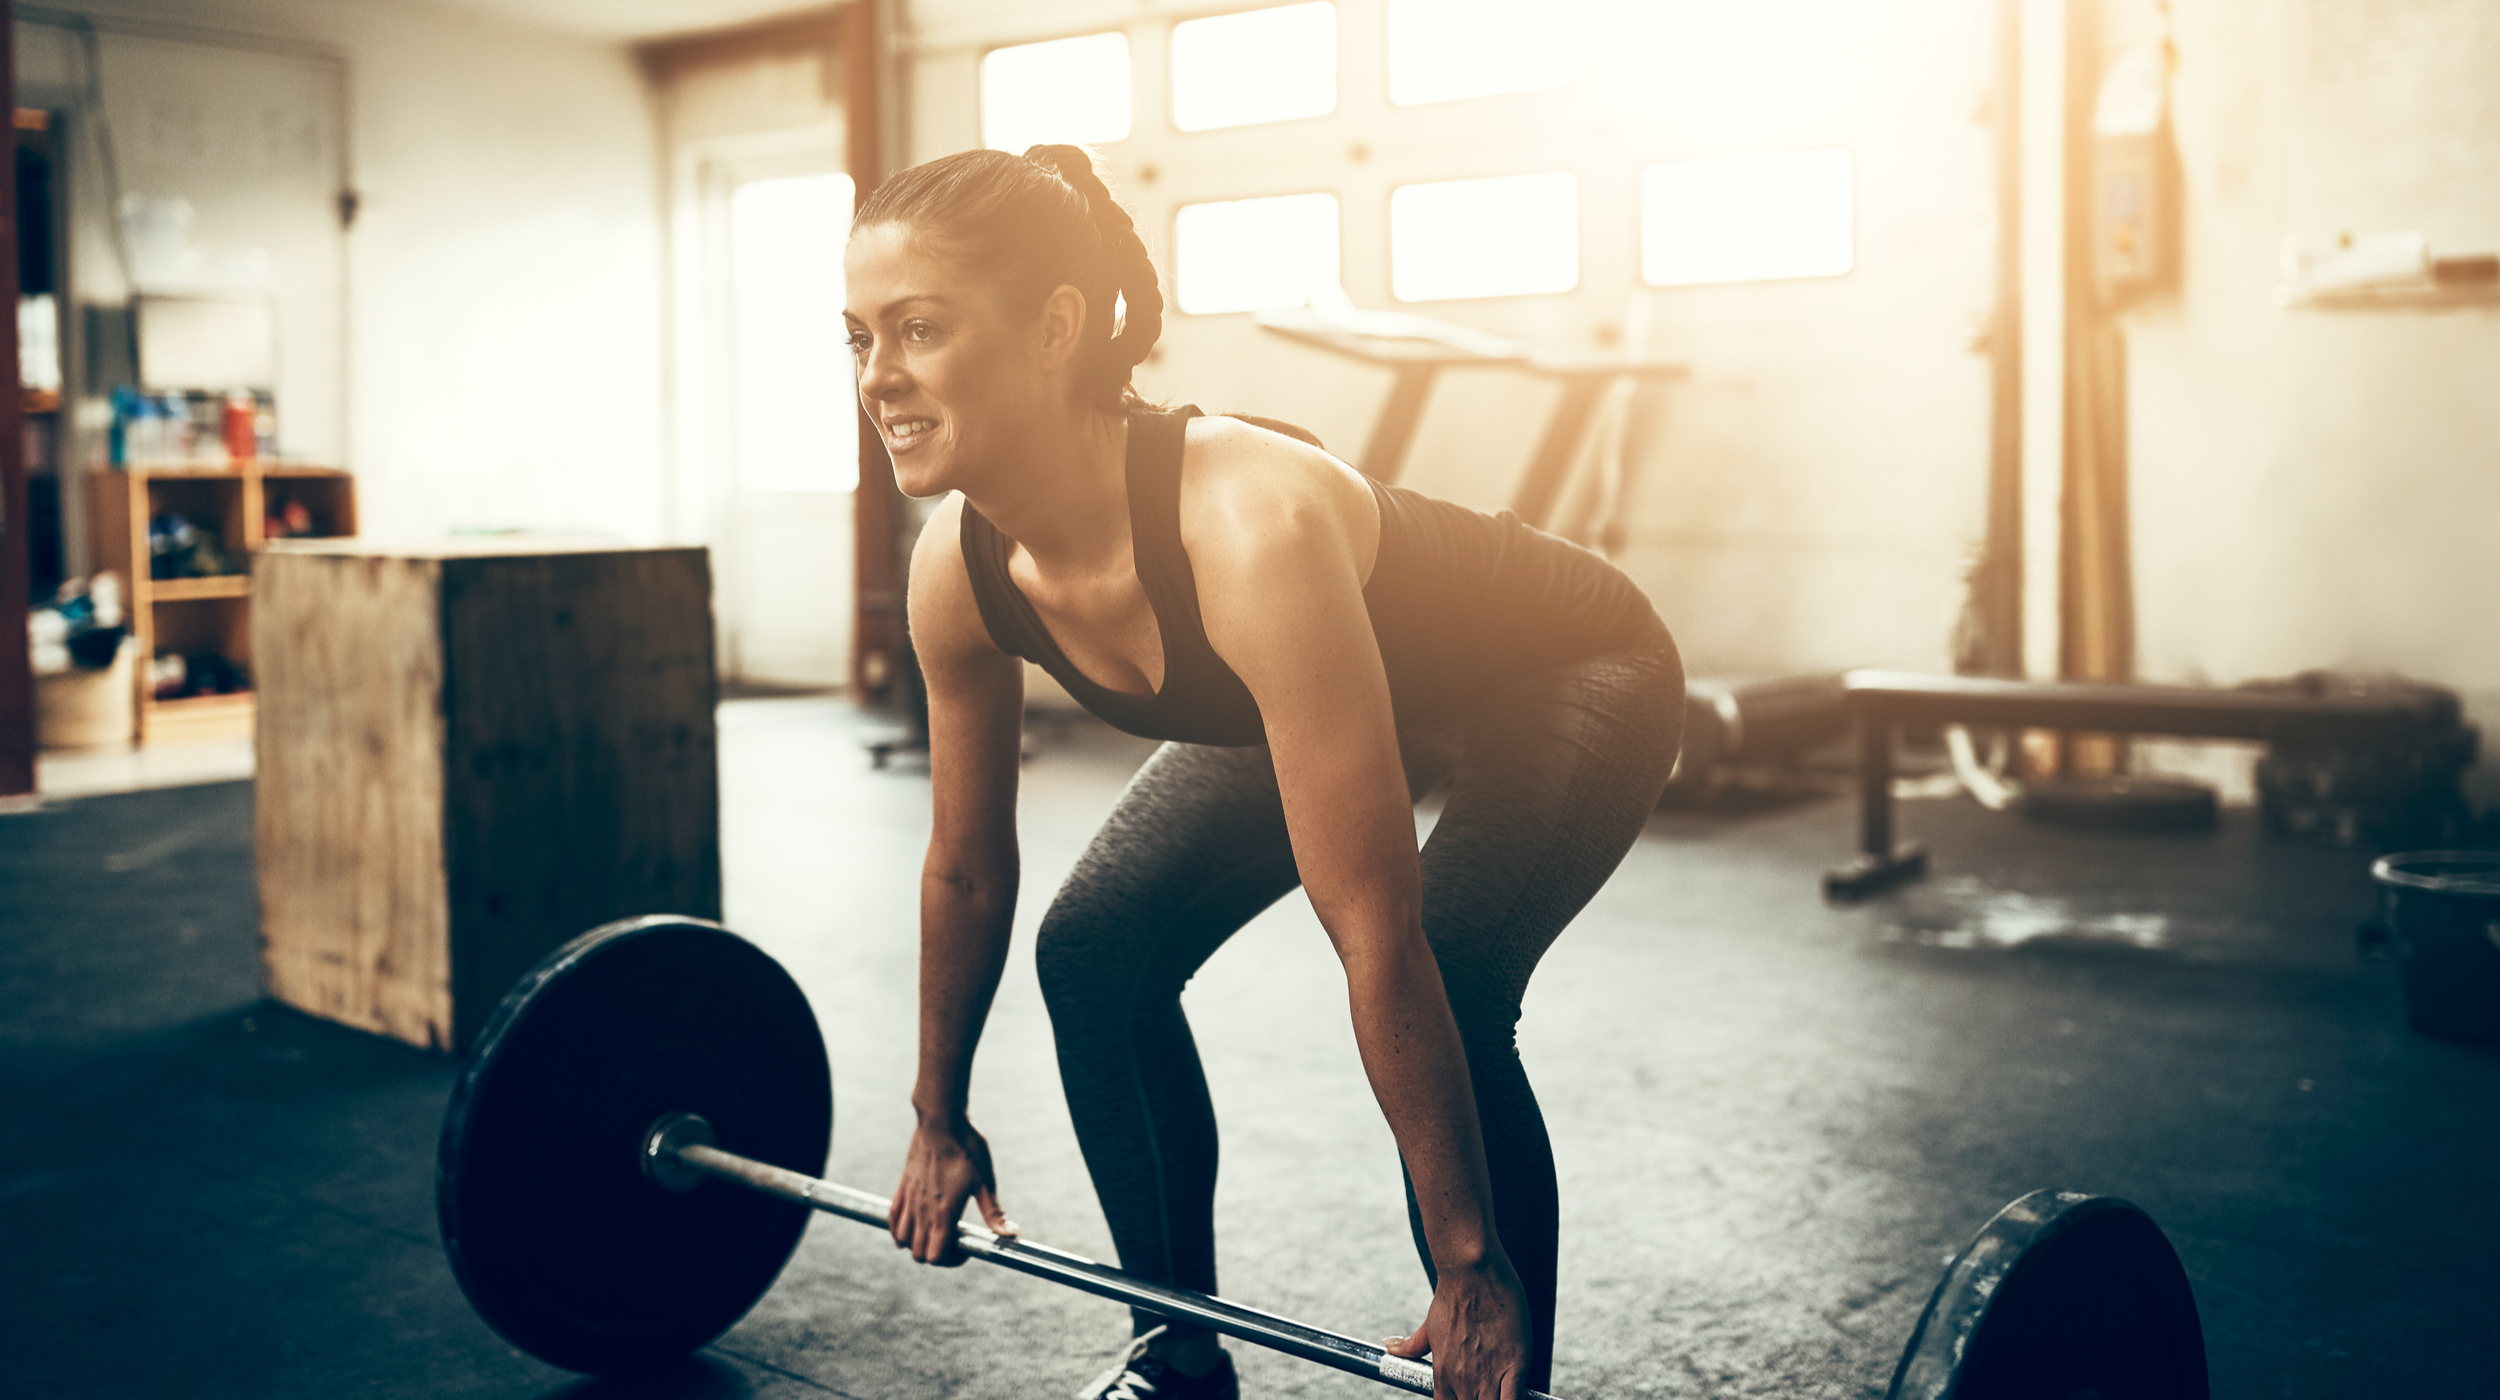 What are the Top Benefits of Resistance Training?